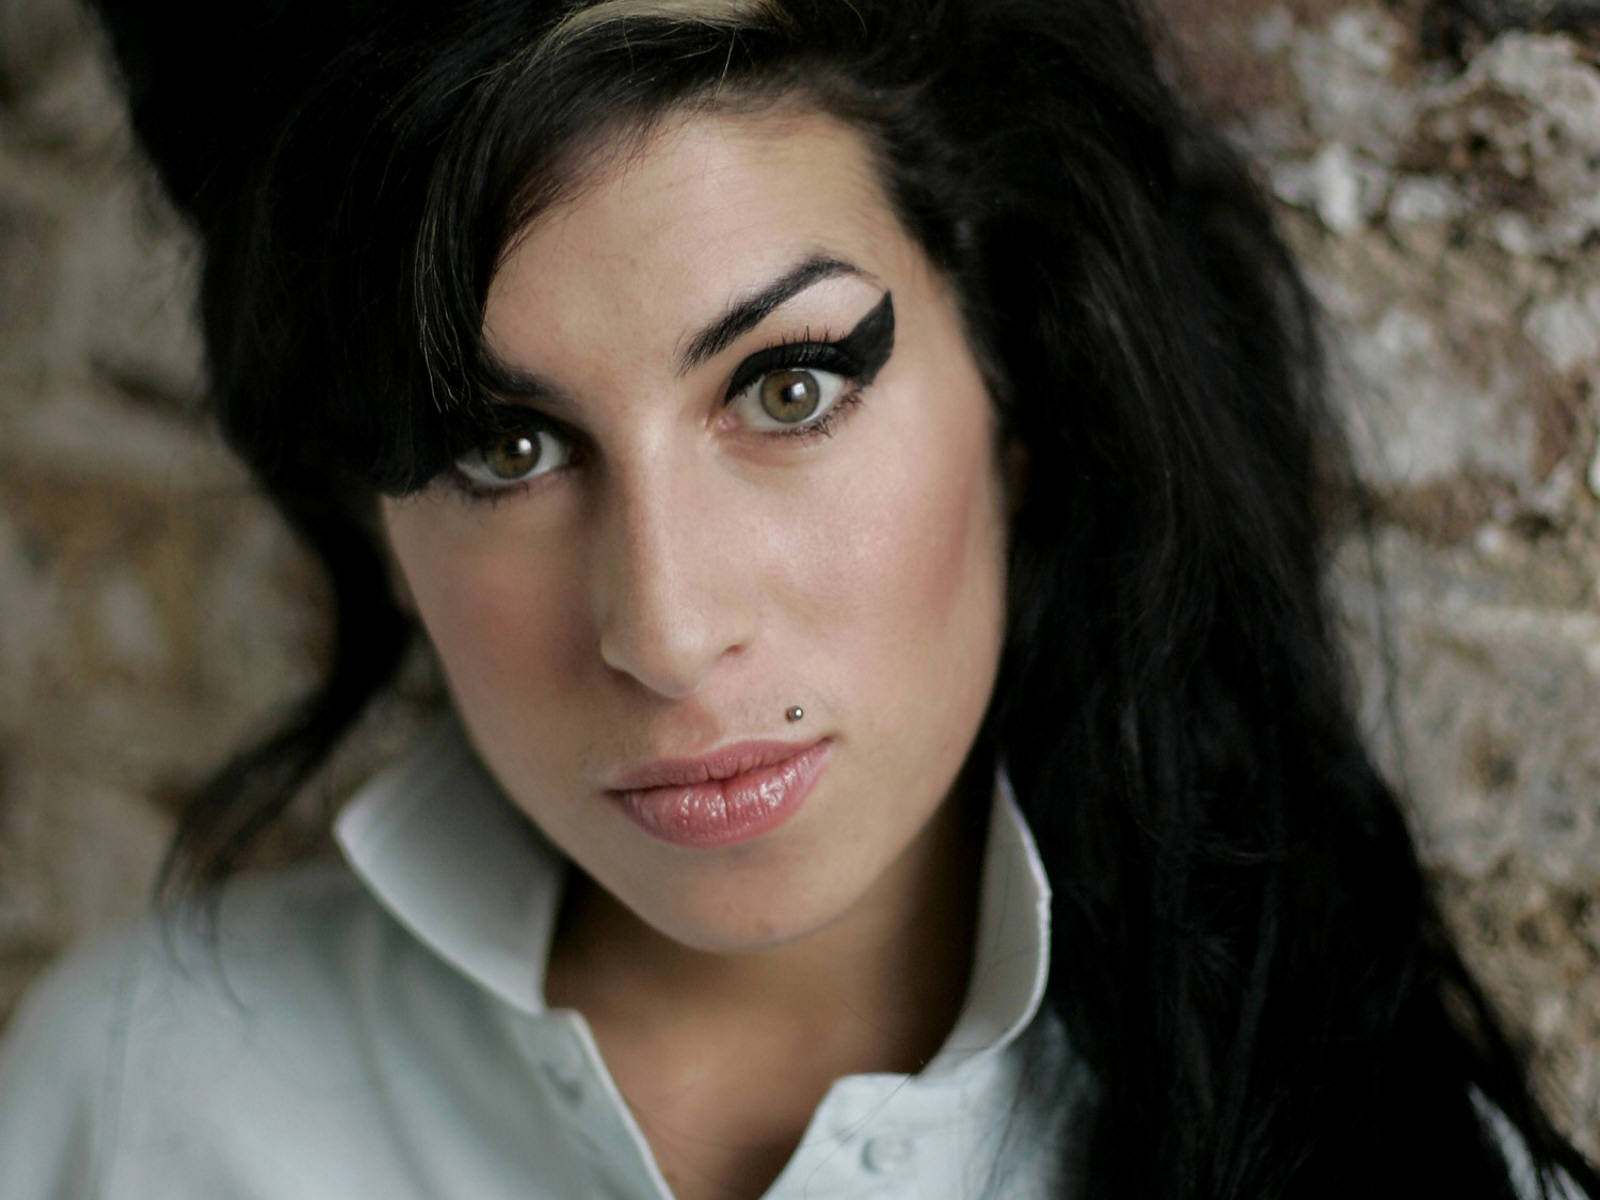 Nearly four years ago, Amy Winehouse joined music legends Jimi Hendrix, Janis Joplin and Kurt Cobain in the 27 Club, and much like those artists, ...